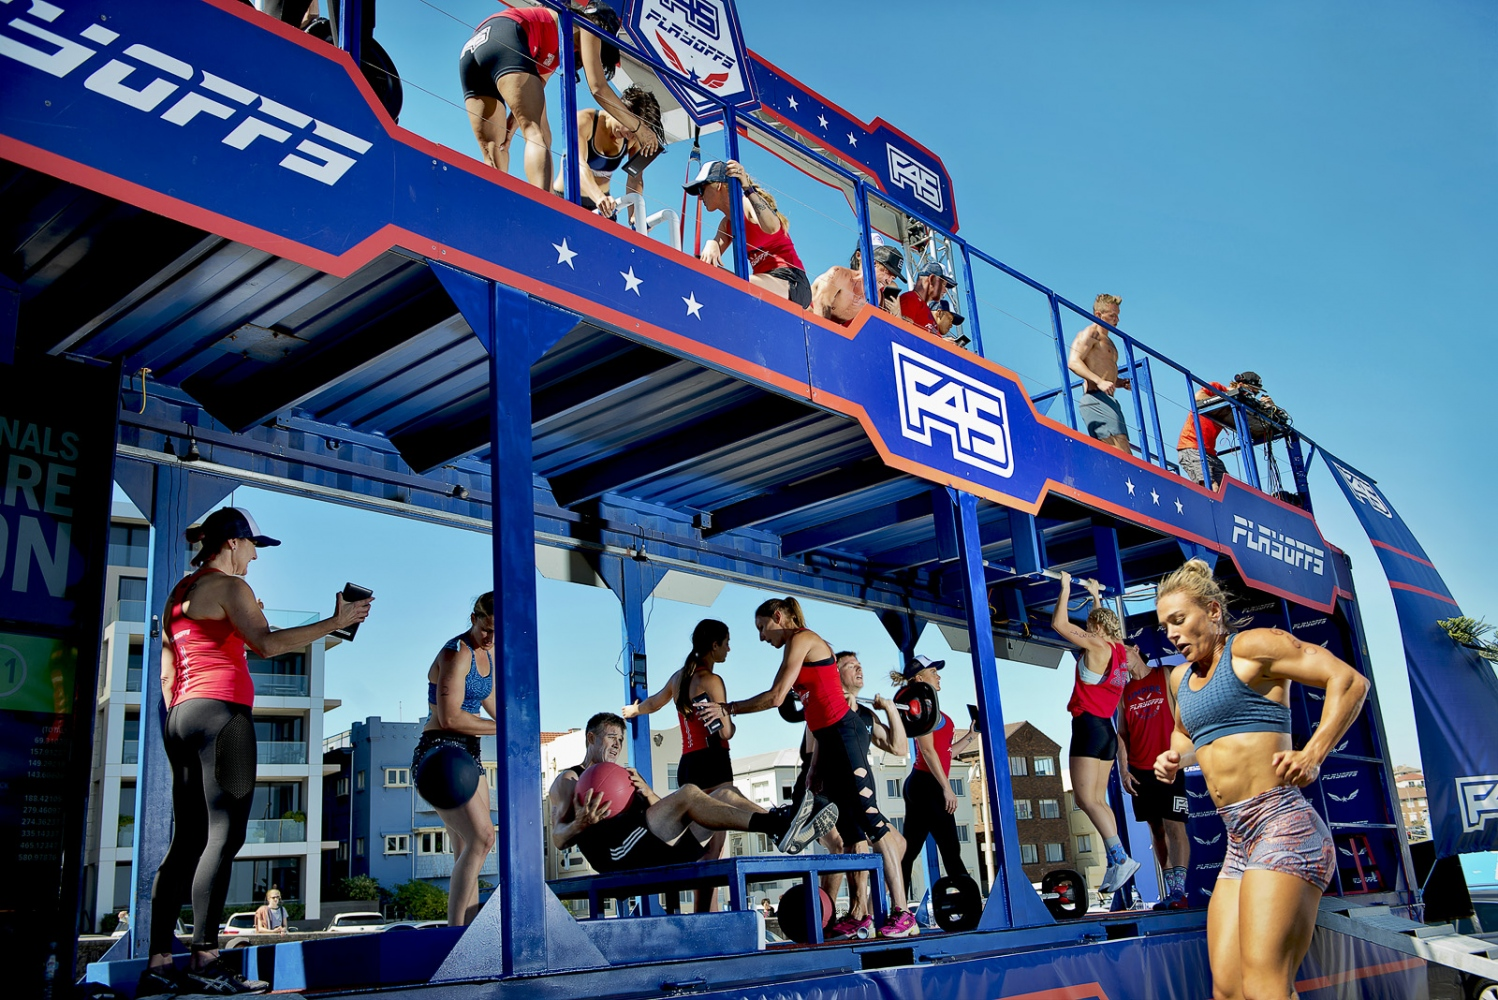 F45 competition finals, Bondi, NSW.